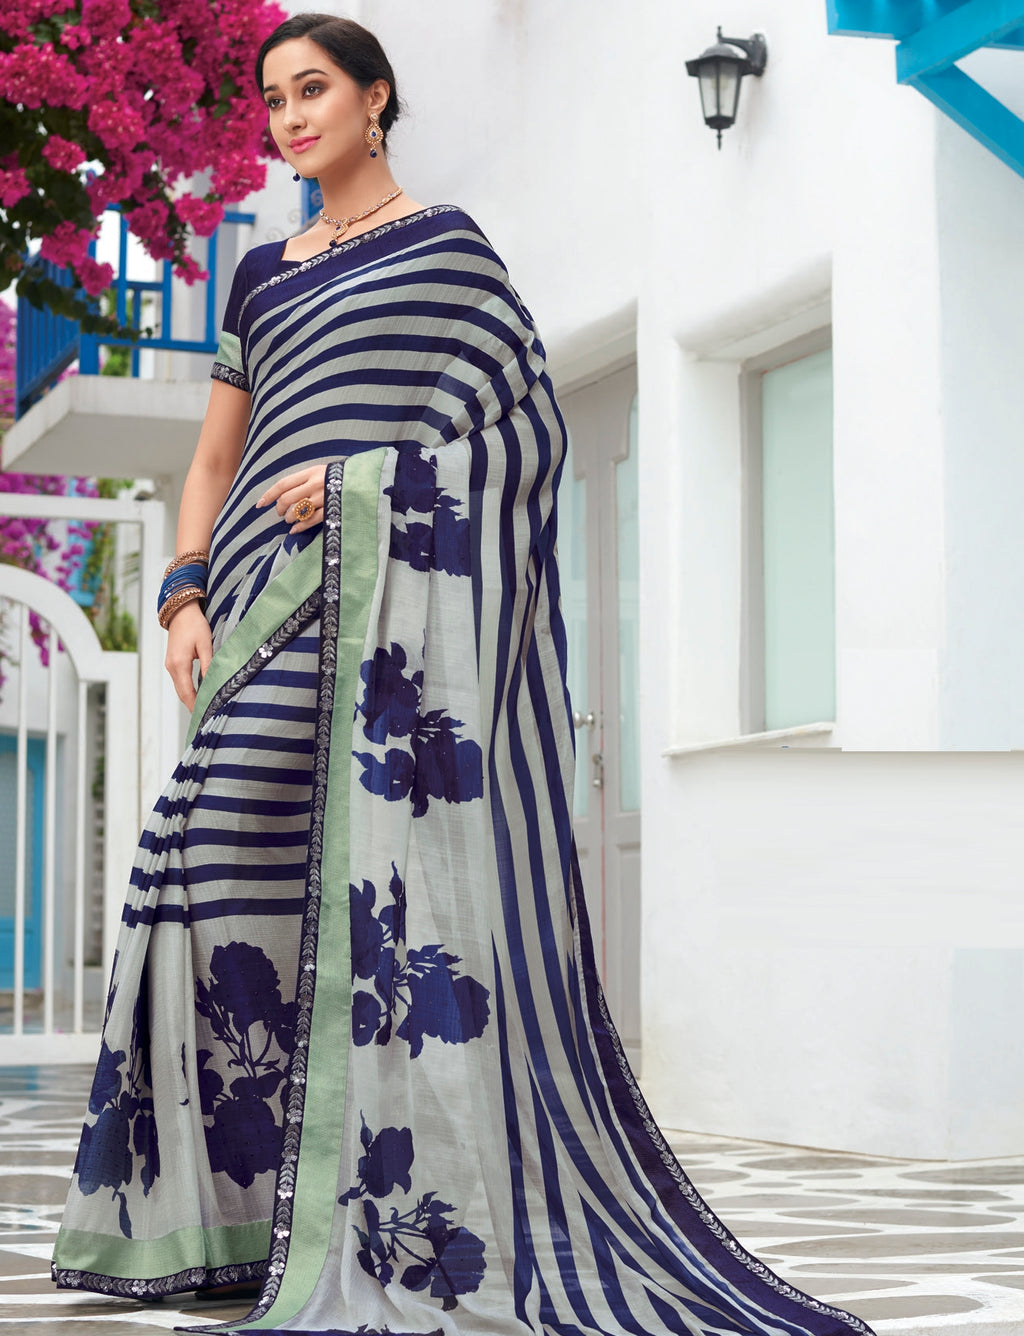 Blue & Ash Grey Color Wrinkle Chiffon Designer Party Wear Sarees  Laxmipati Pankhudi Catlog SJ-10399